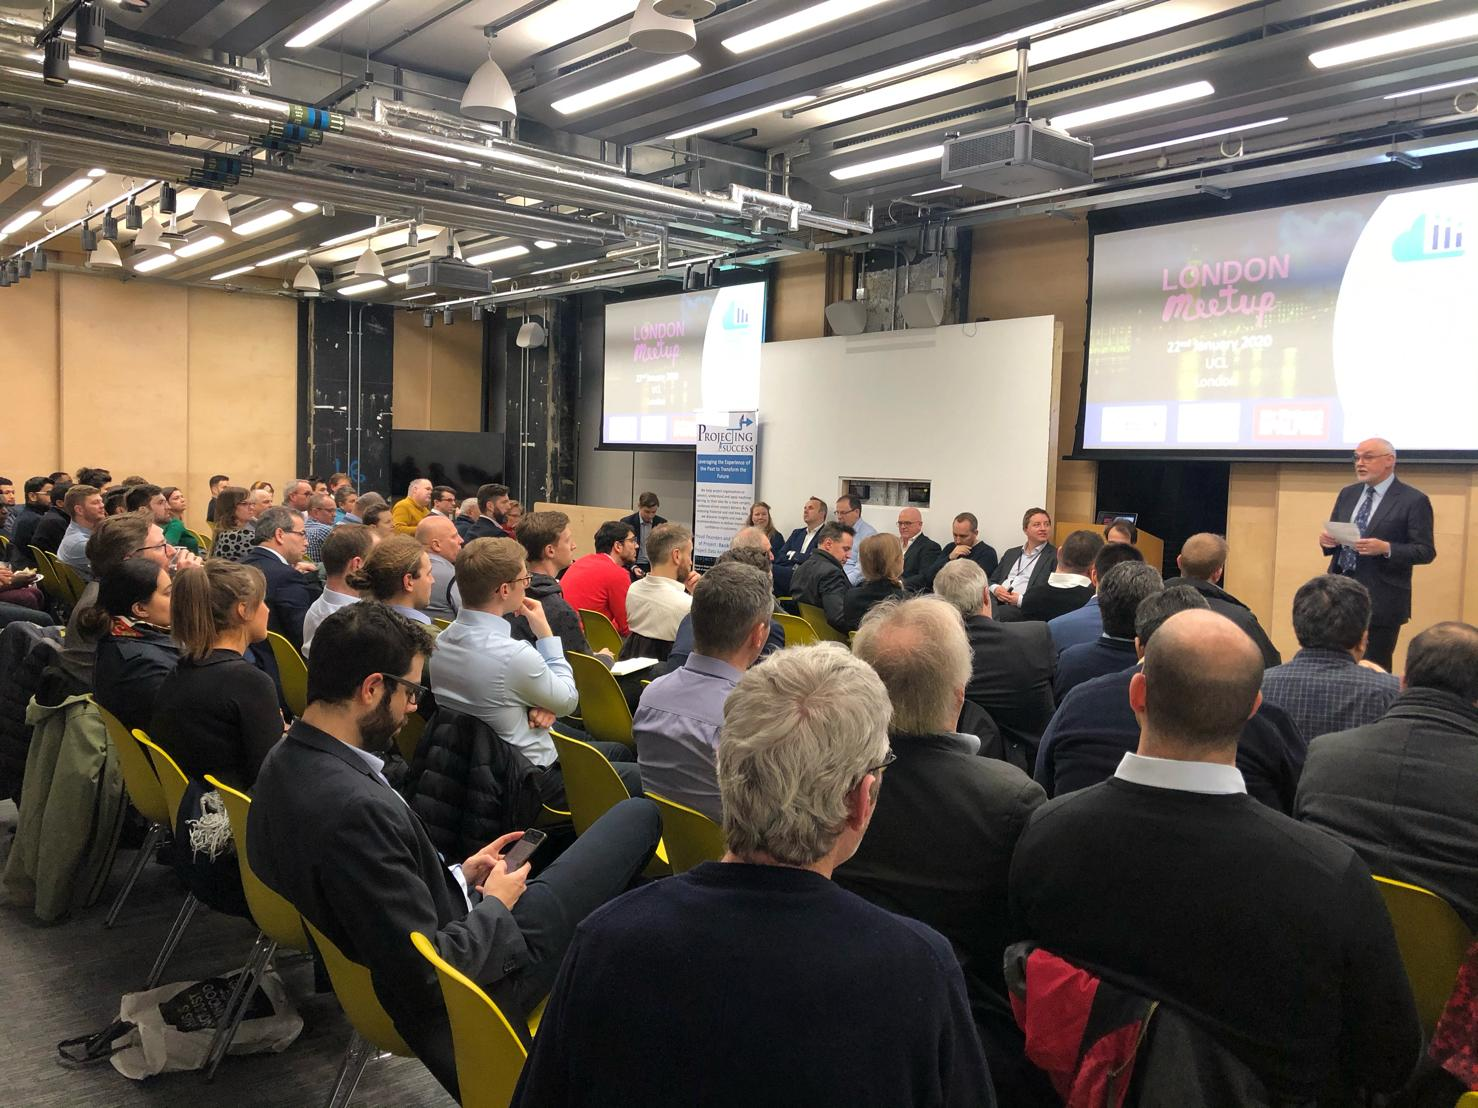 Panel session: Project Data Analytics, Hype or Reality. 23 Jan 2020